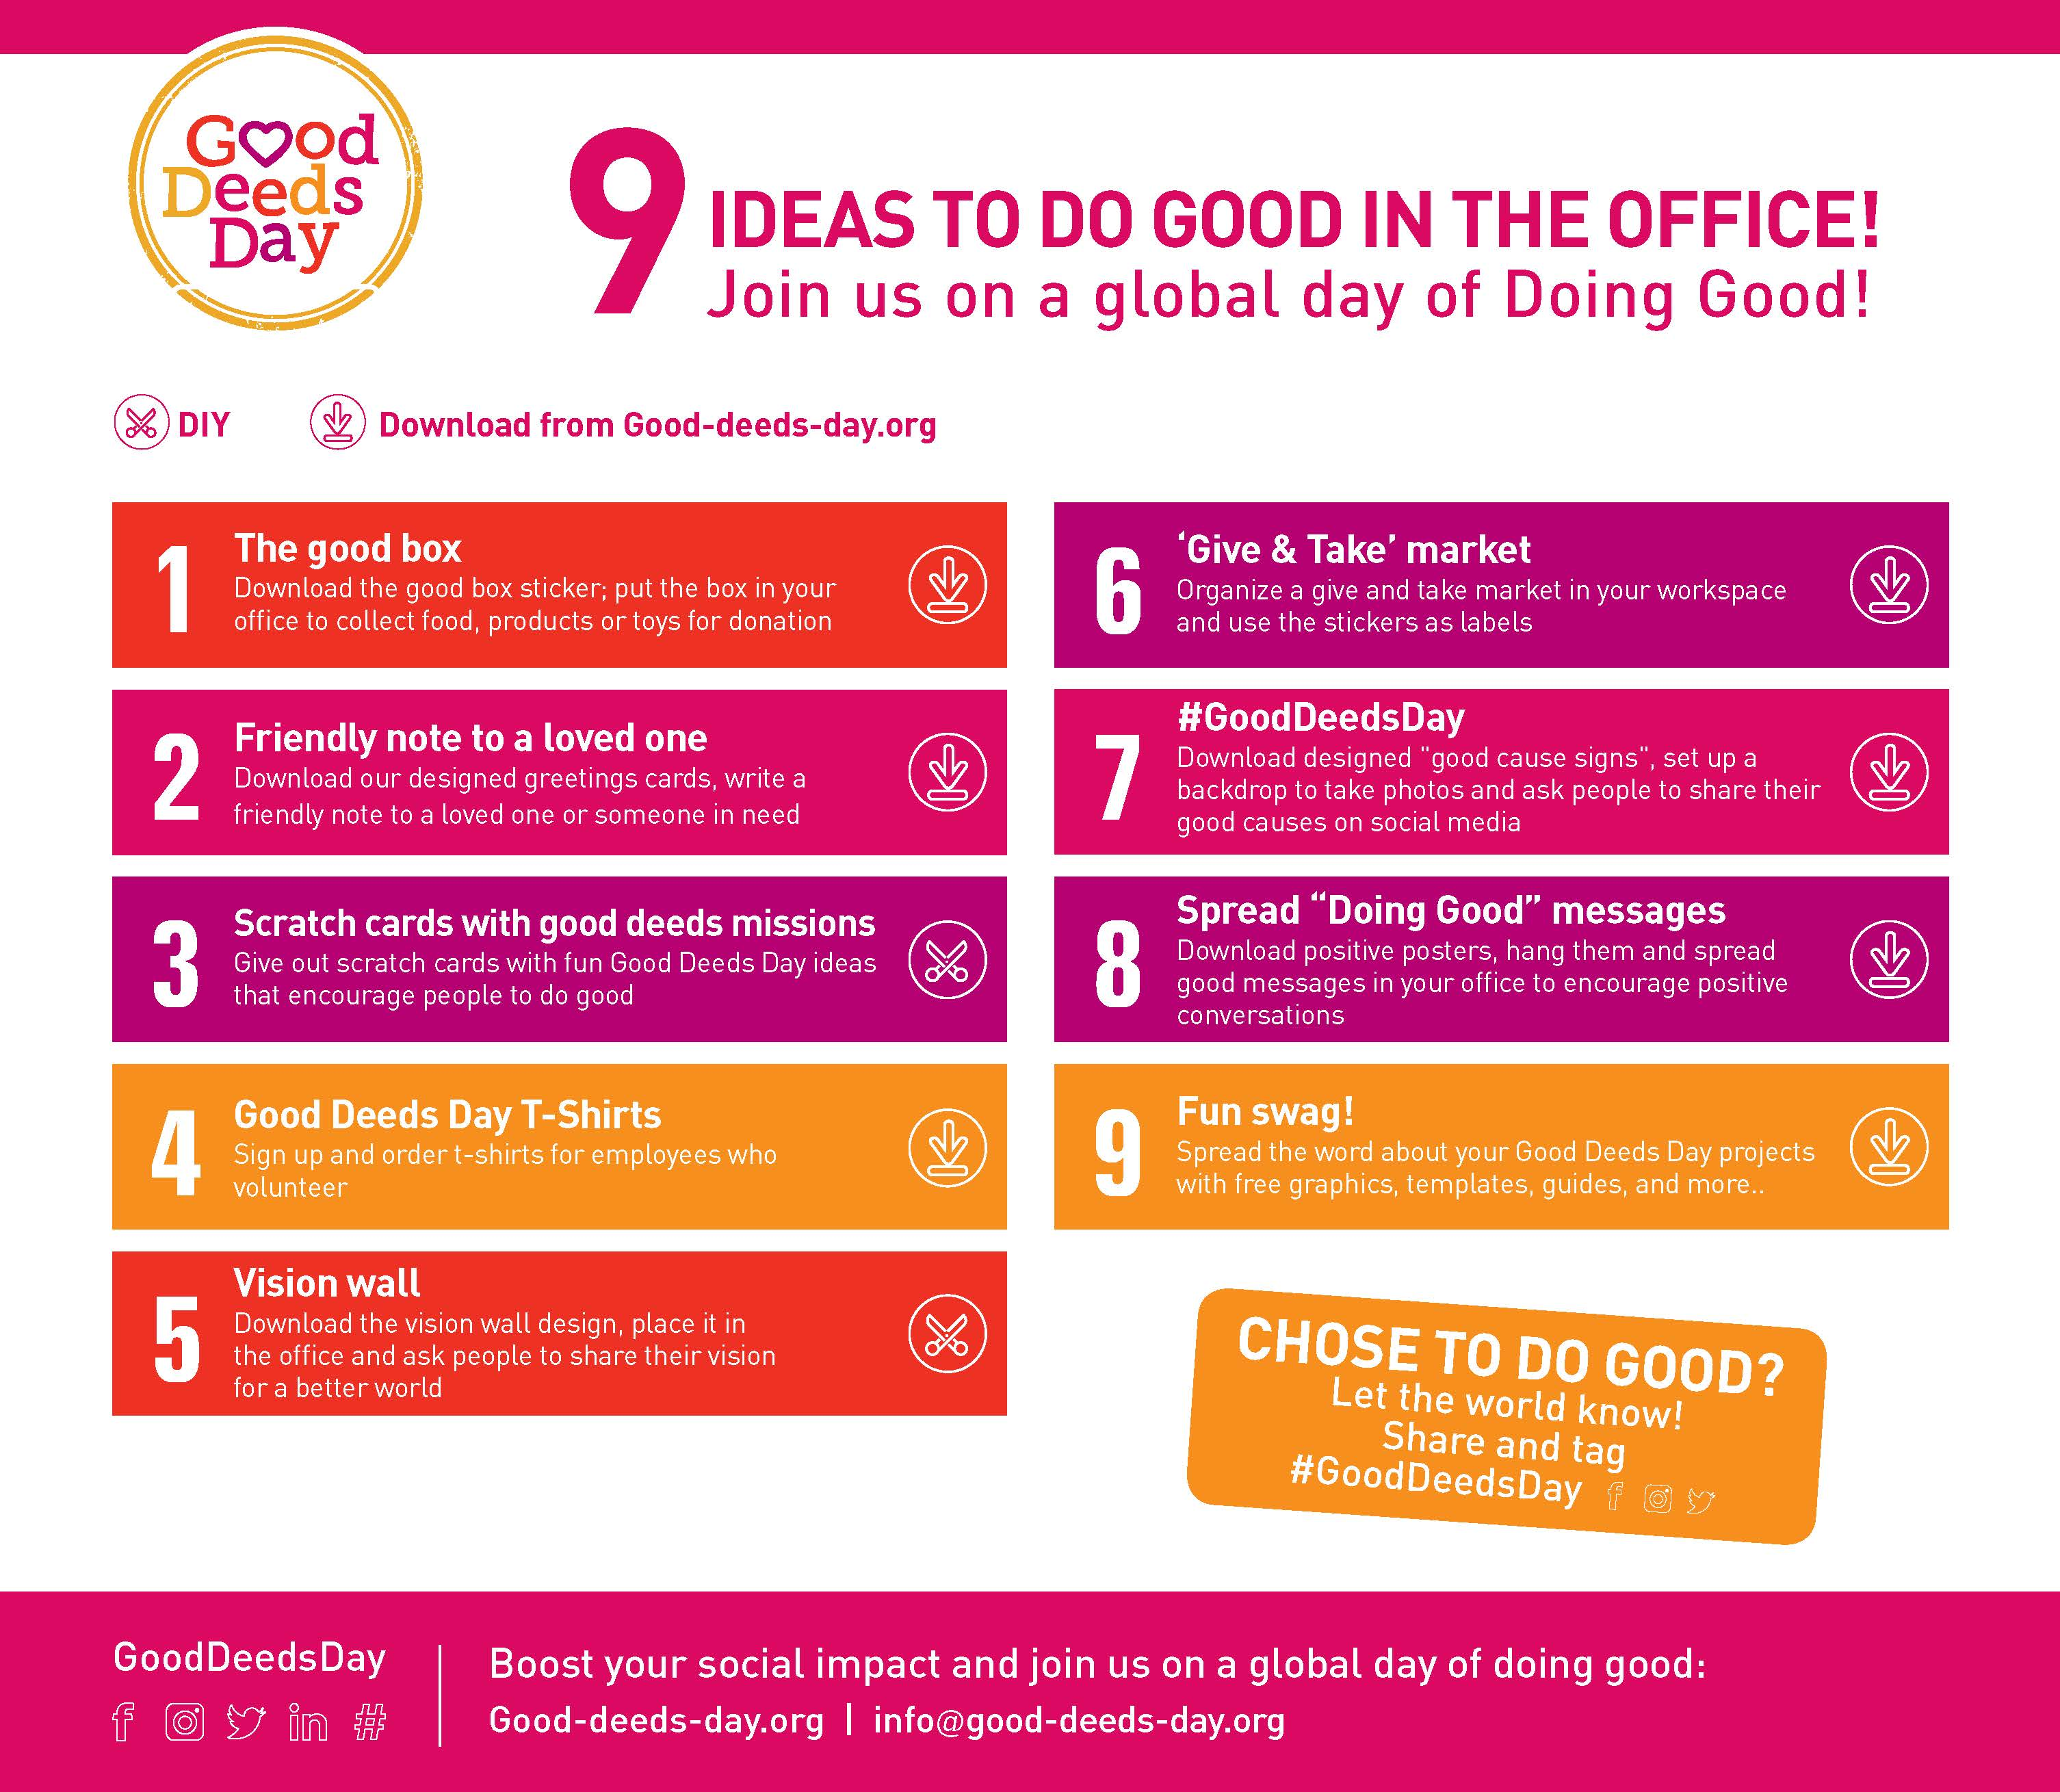 9 EASY DOING GOOD IDEAS FOR YOUR OFFICE - Good Deeds Day